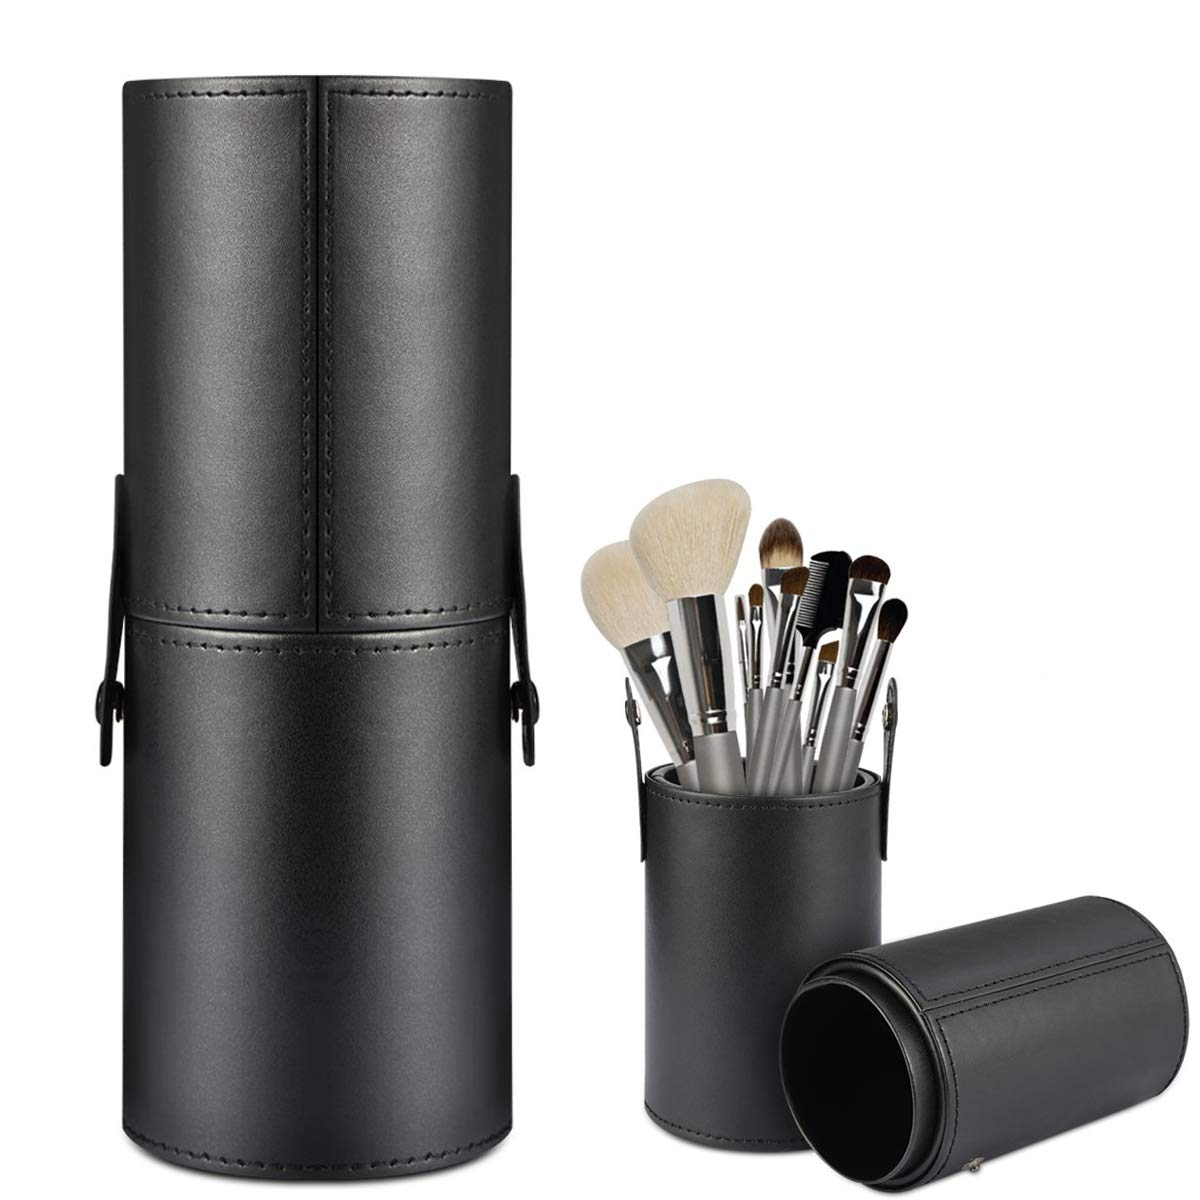 LanMa Makeup Brush Holder,Large Vegan Leather Cylinder Box Bags for Portable Cosmetic Makeup Case Storage Makeup Bags for Traveling or Bedroom Vanity(PU Black)